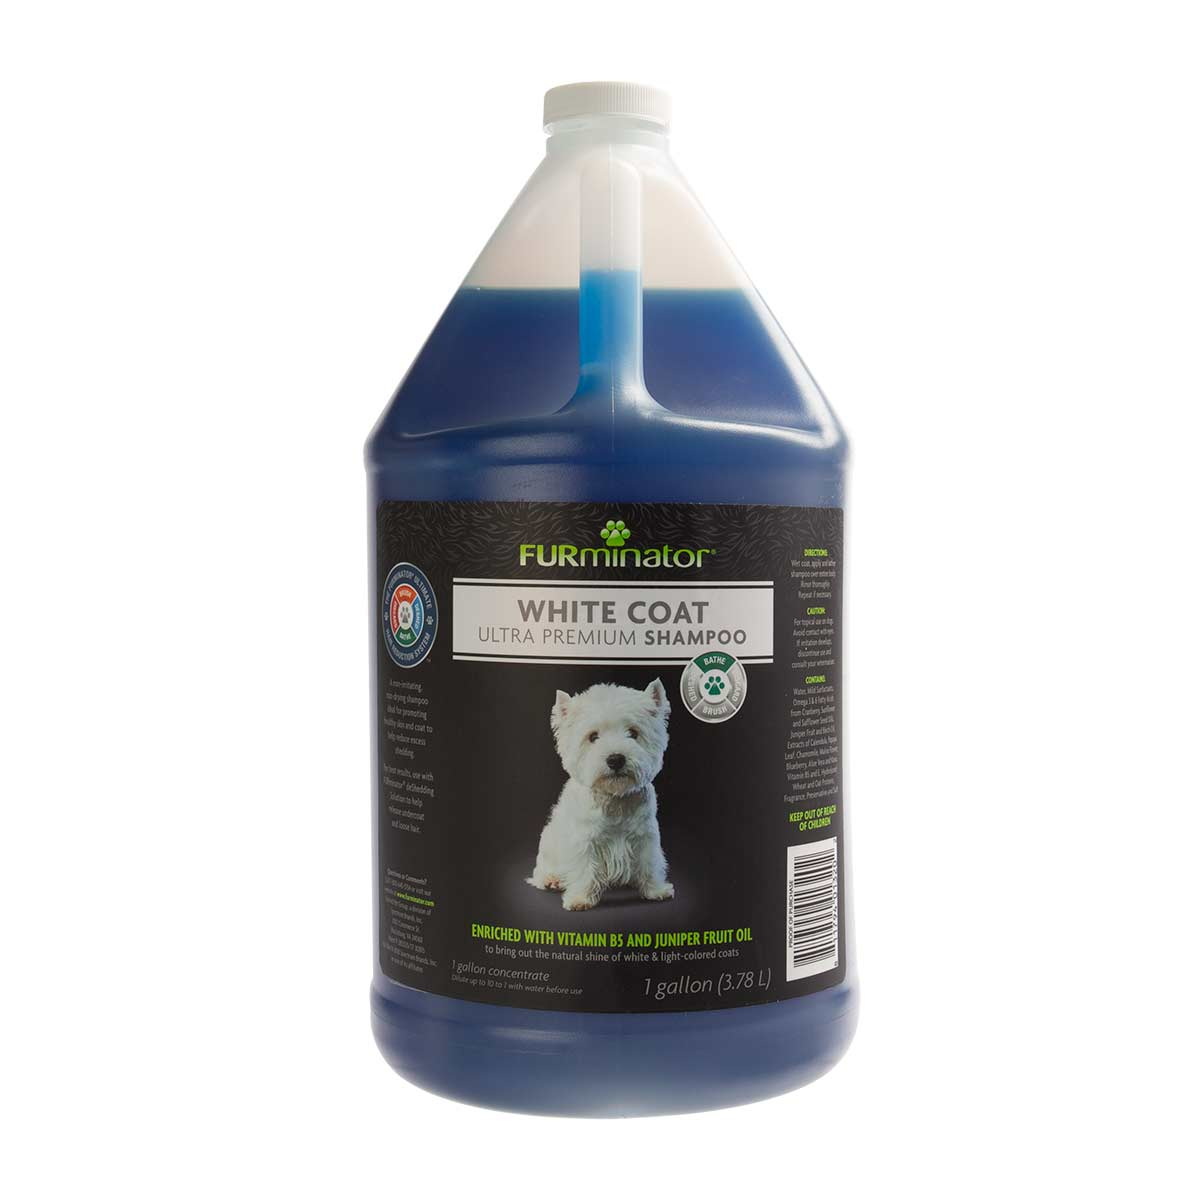 Furminator White Coat Ultra Premium Shampoo for Dogs - Gallon Concentrated 10:1